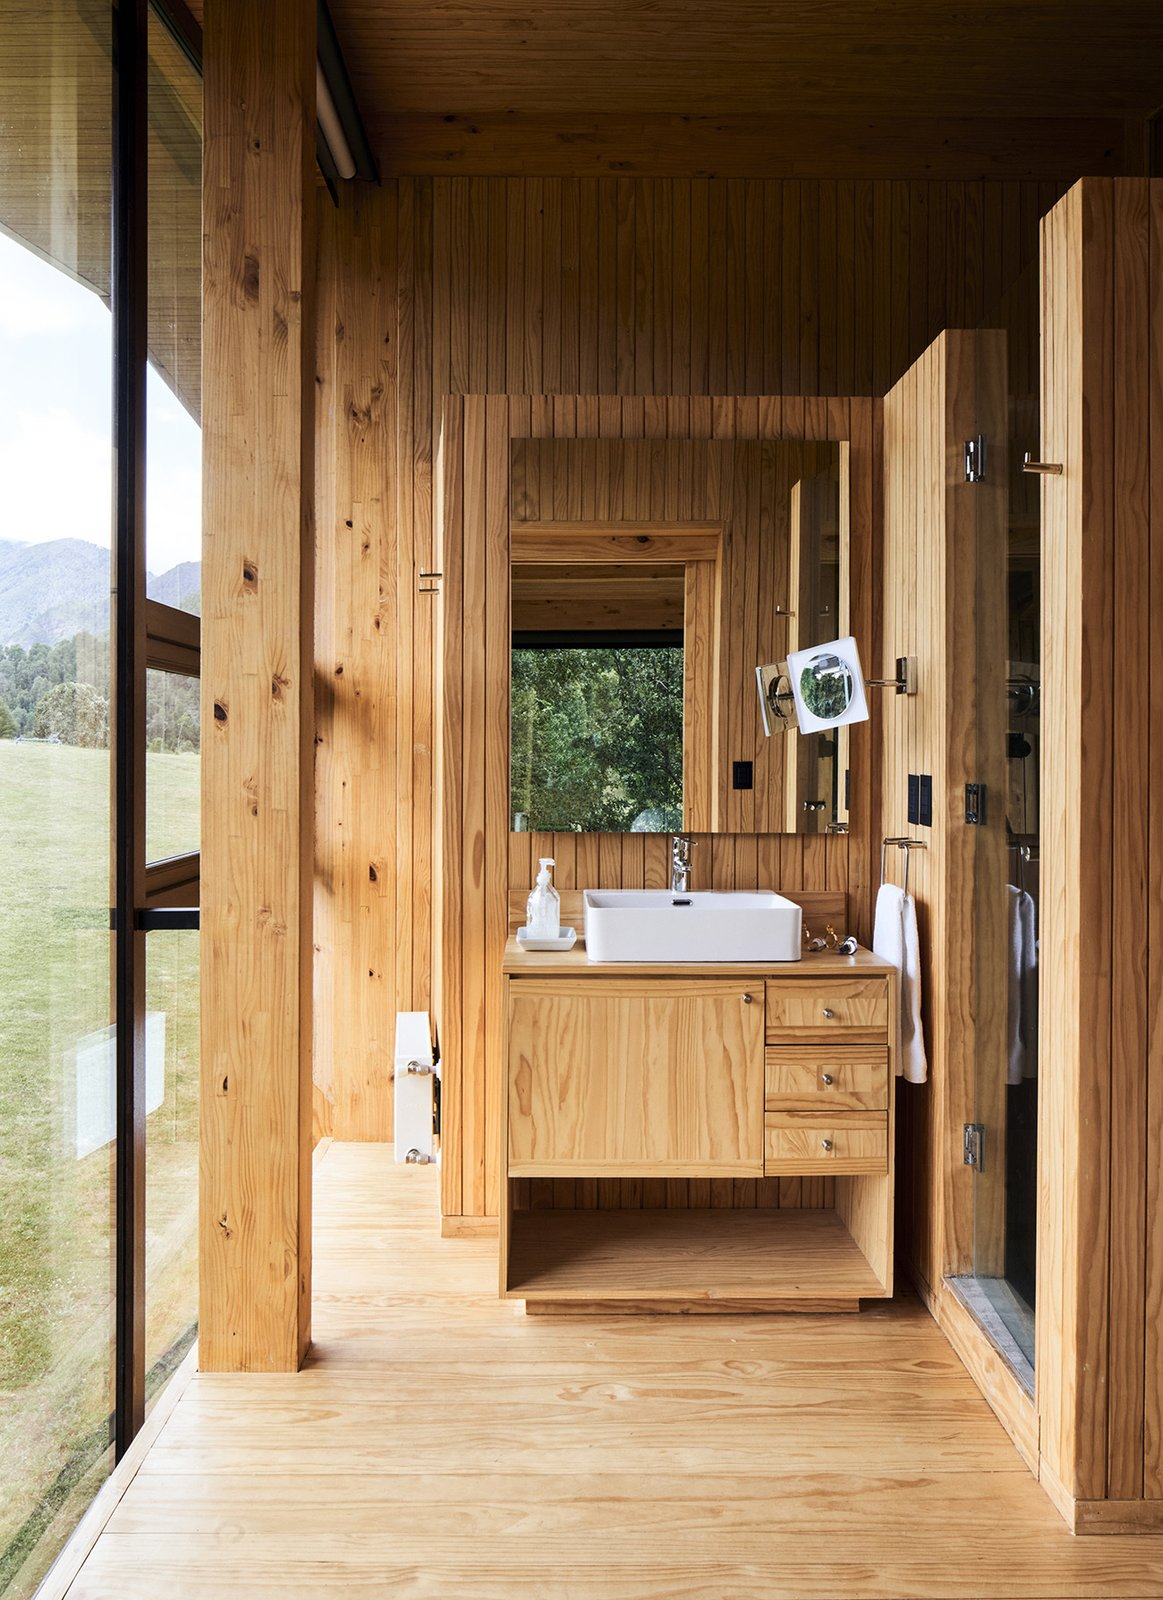 Bath, Wood, Medium Hardwood, Vessel, and Enclosed The raw pine that wraps around the vanity, walls, flooring and ceiling in the bath lends texture and warmth.  Bath Enclosed Medium Hardwood Photos from A Cantilevered Home in Southern Chile Takes Design Cues From Lake, Trees, and Sky